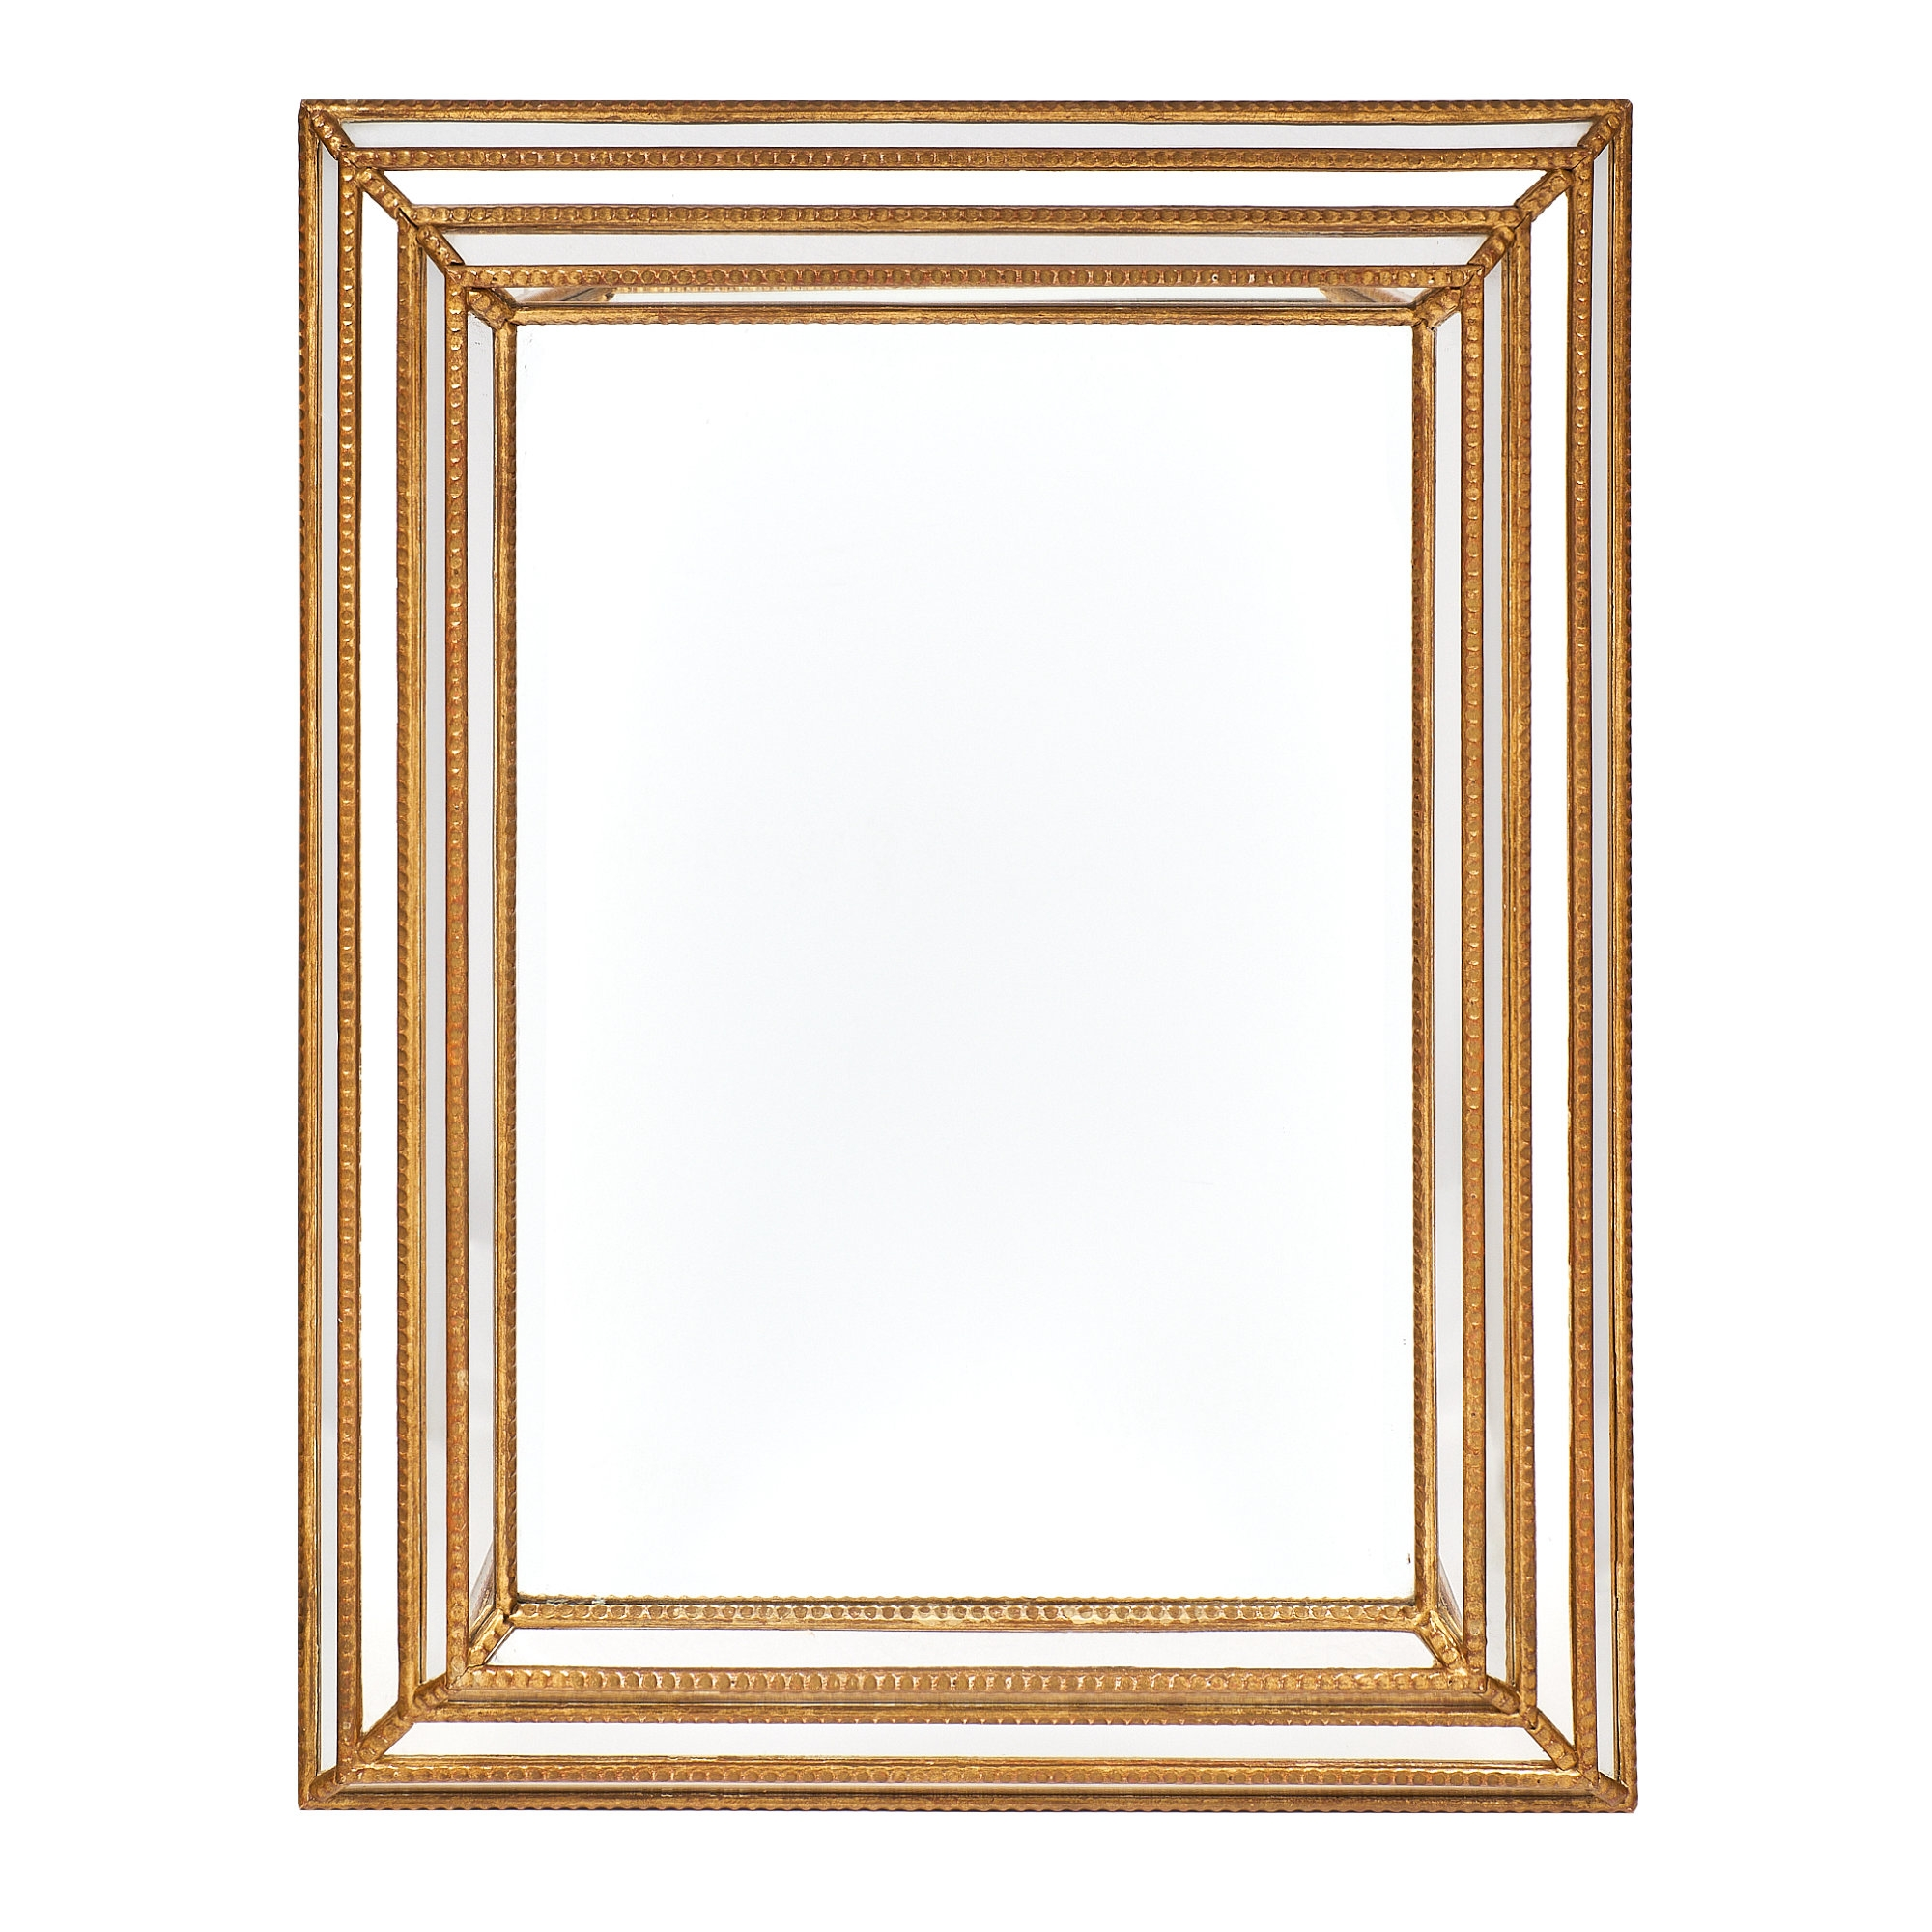 Antique French Louis Xvi Style Pareclose Mirror Jean Marc Fray Within Vintage French Mirror (Image 4 of 15)